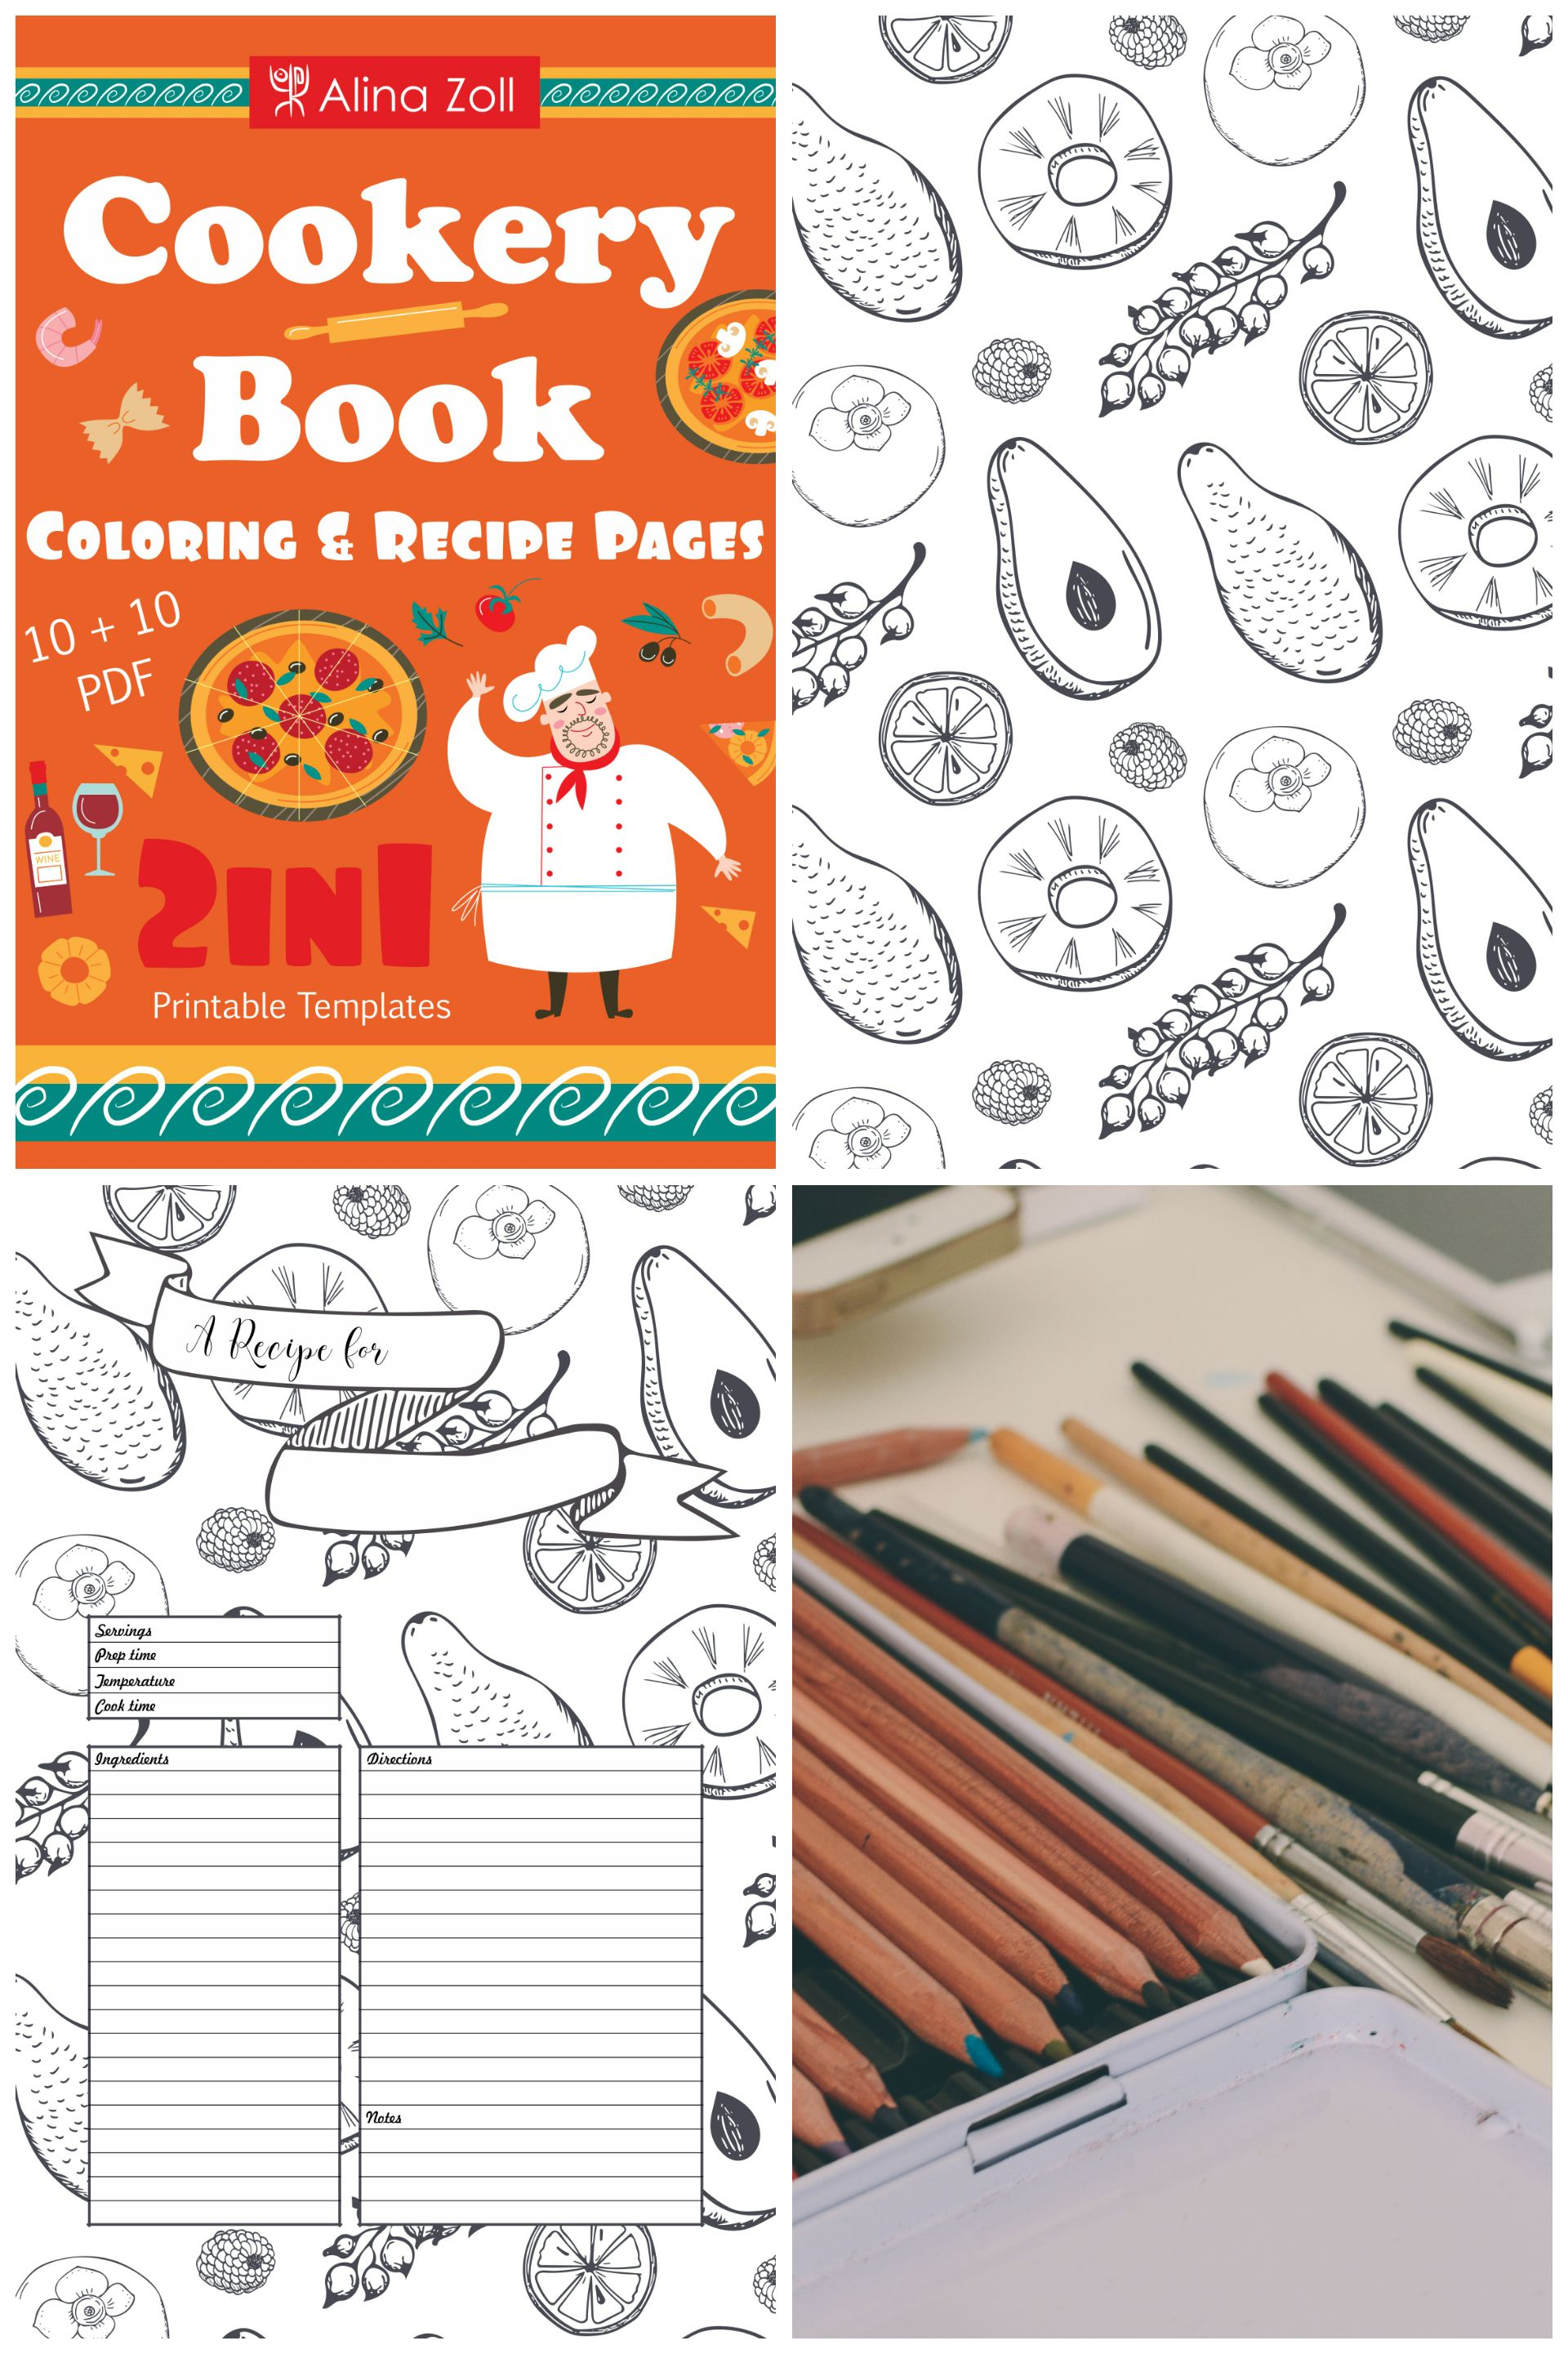 2 in 1 cookery coloring book recipe cards coloring recipe pages food patterns food coloring pdf adult coloring book digital download printable blank